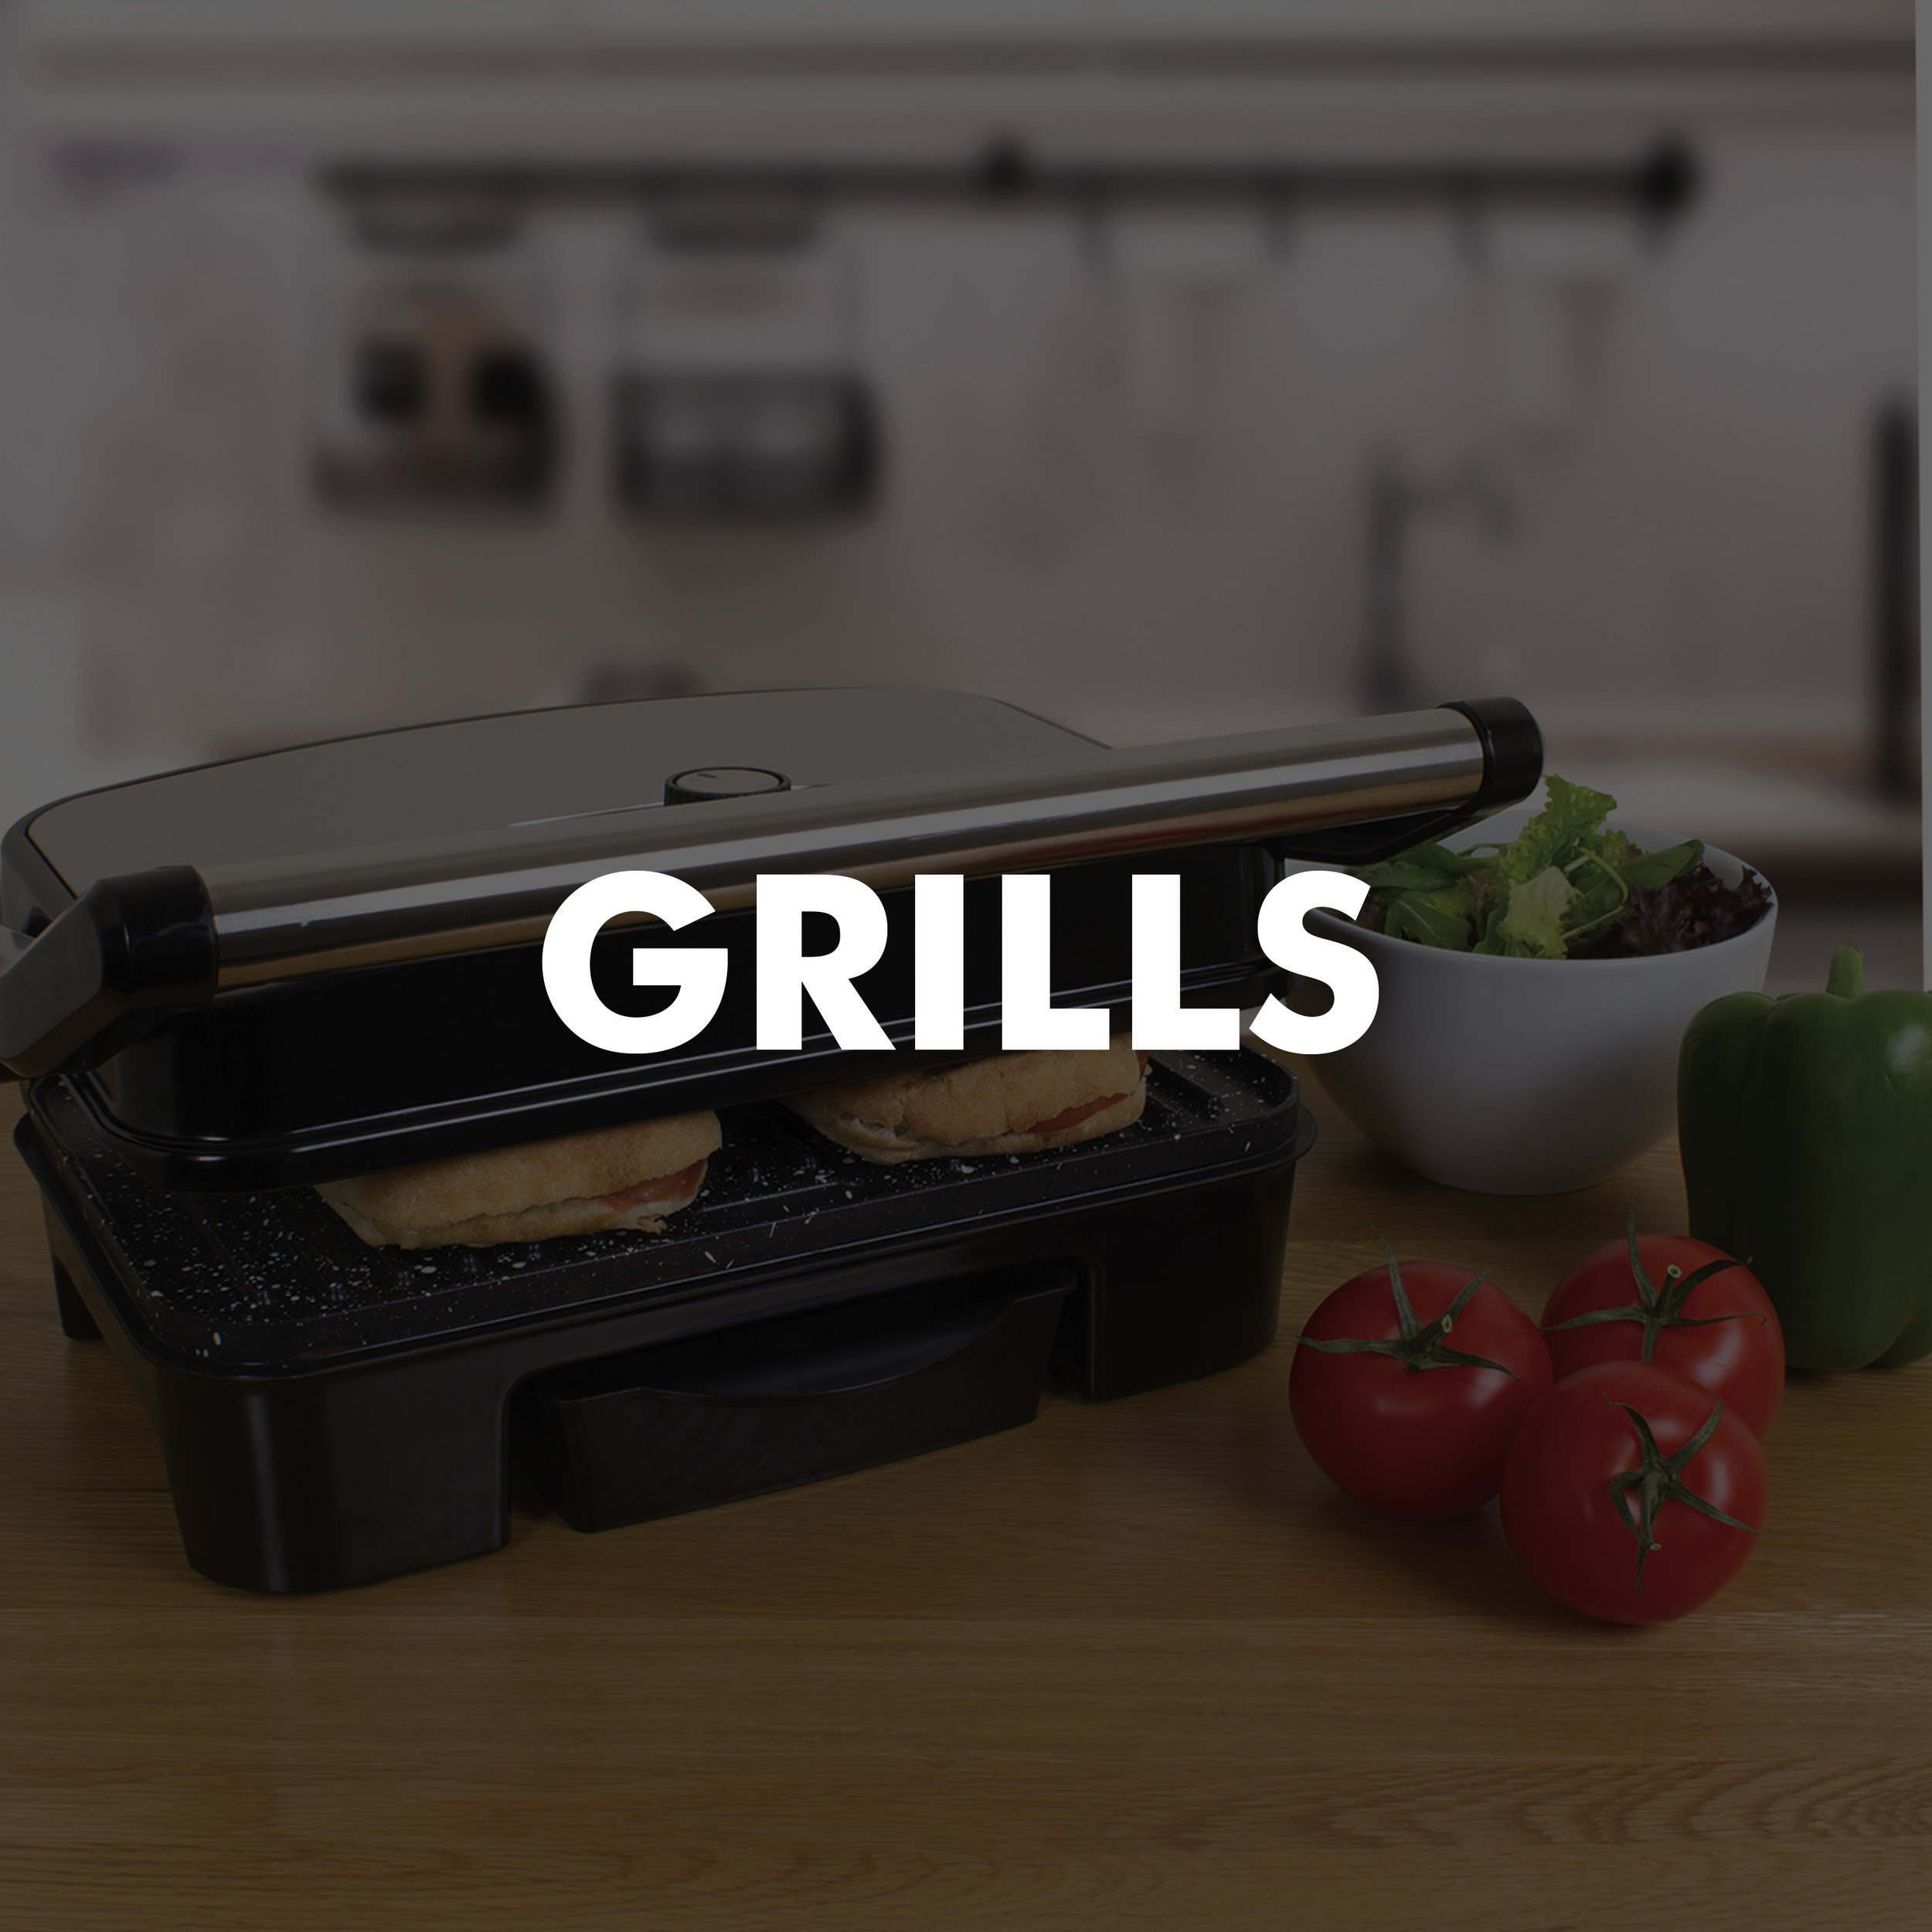 Grills category